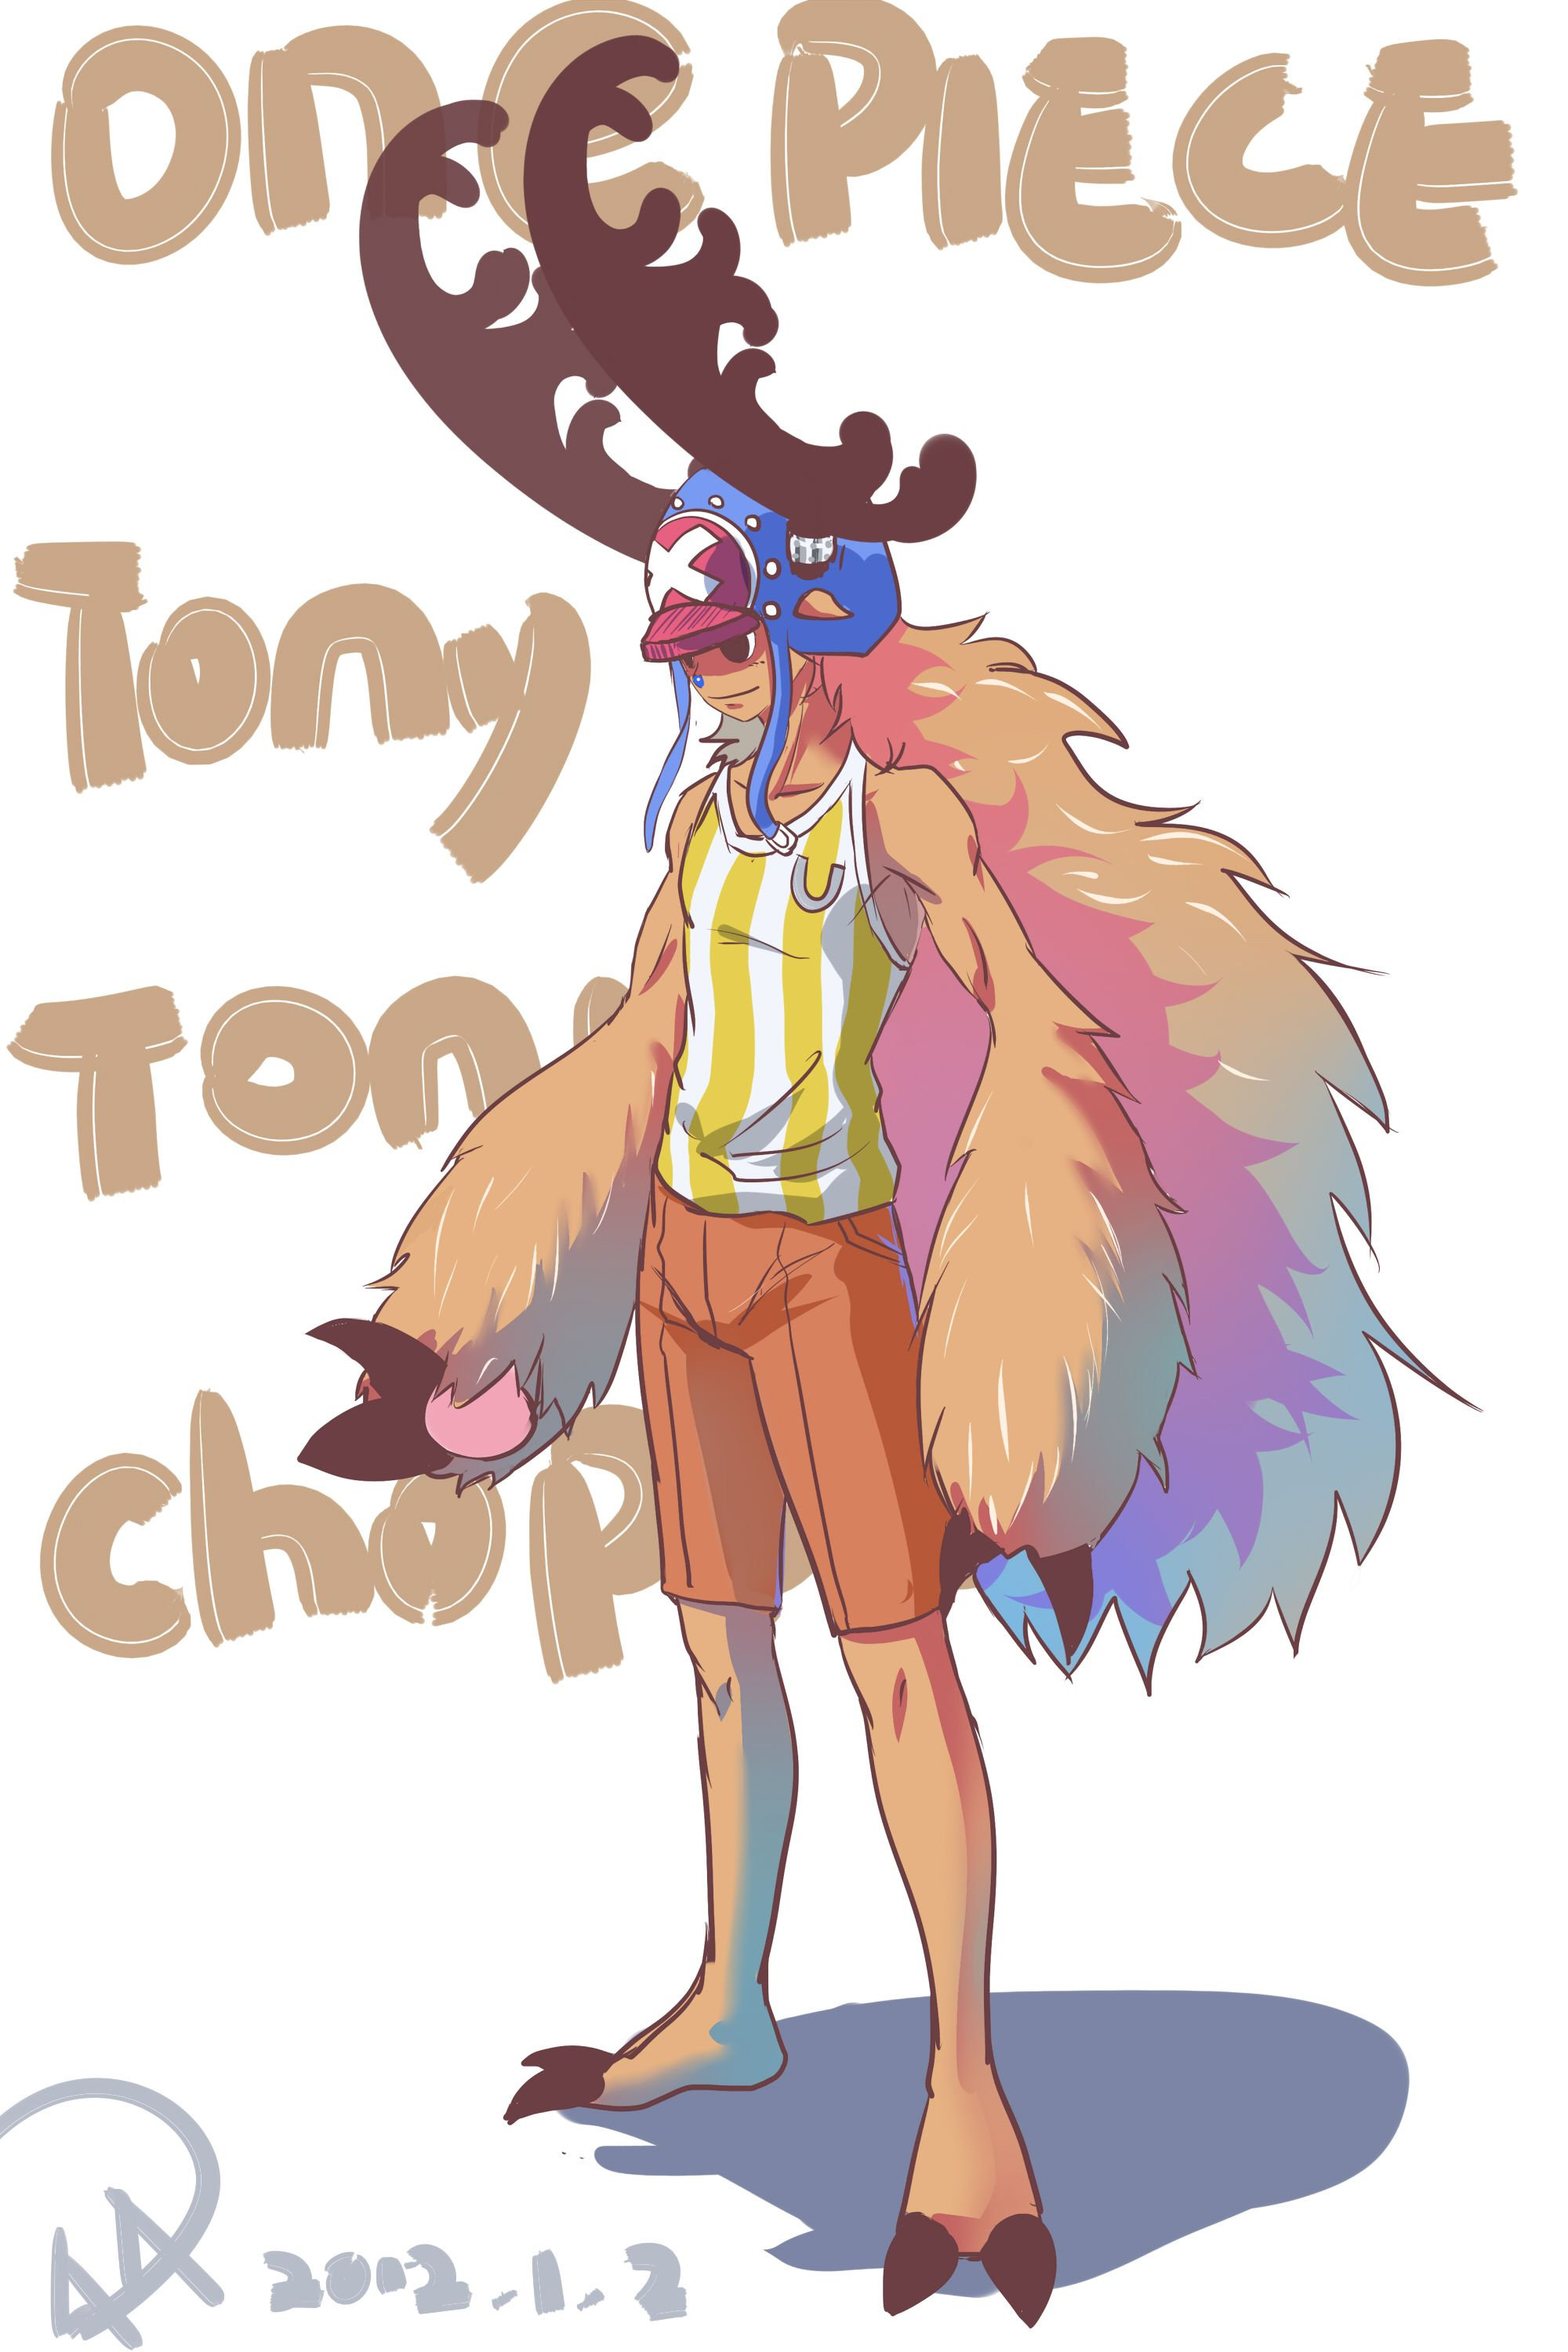 Chopper One Piece All Forms